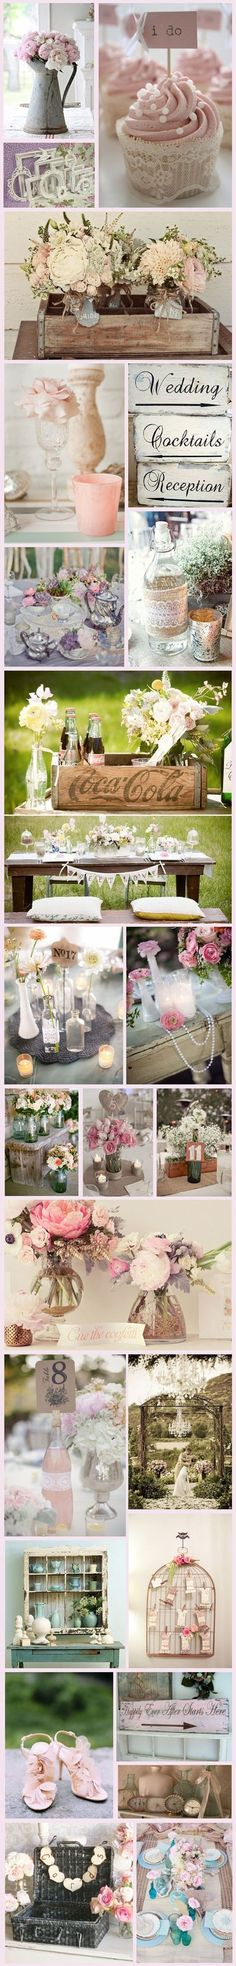 Wednesday Wedding Inspiration: We ♥ Shabby Chic!  – Bespoke-Bride: Wedding Blog